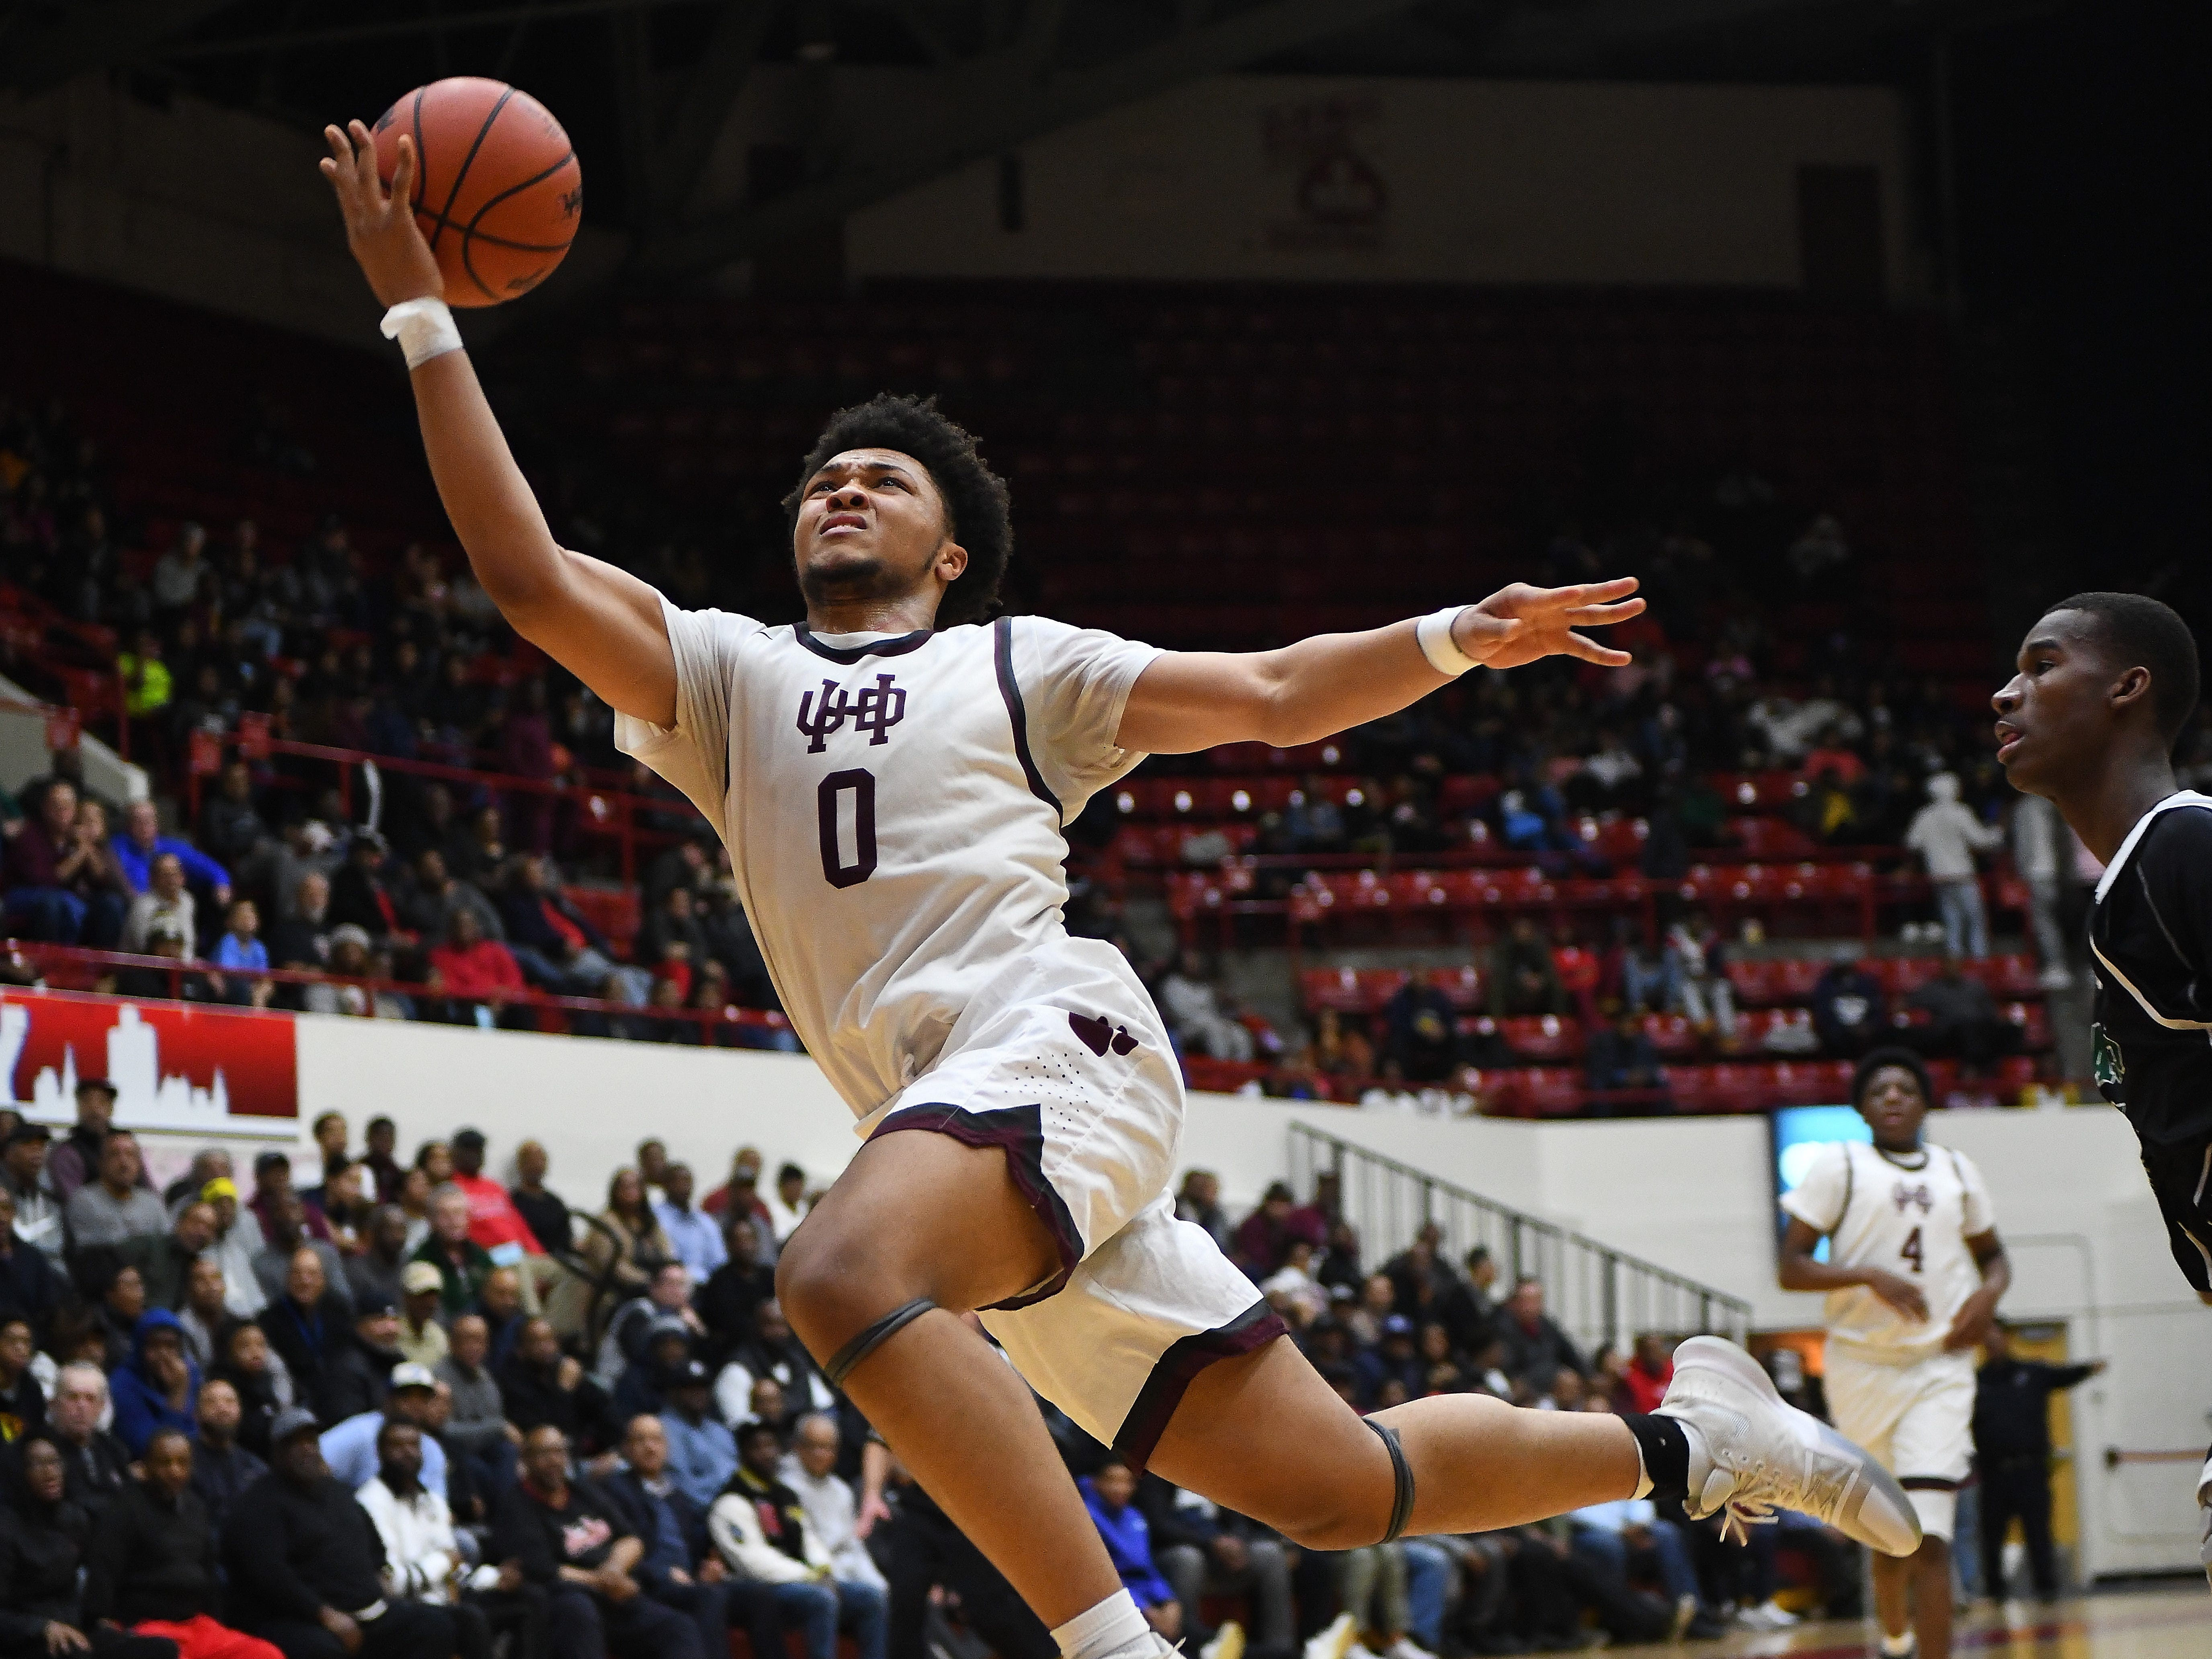 U of D Jesuit's Daniel Friday is fouled driving to the basket at the end of the third quarter.